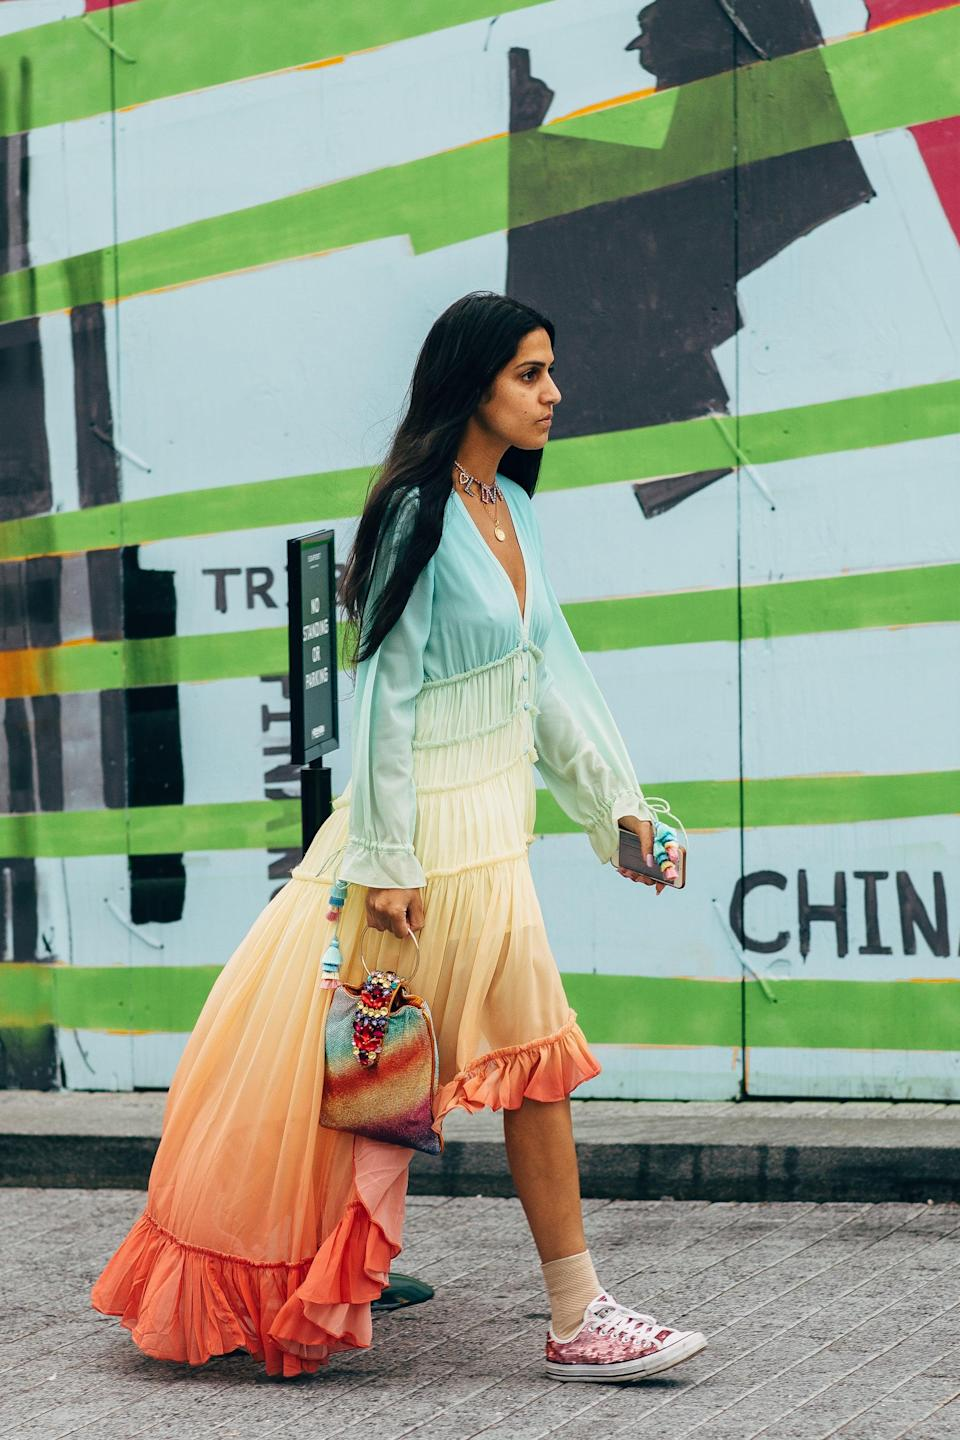 <p>An ombre rainbow-hued dress seems made for summer, no?</p>